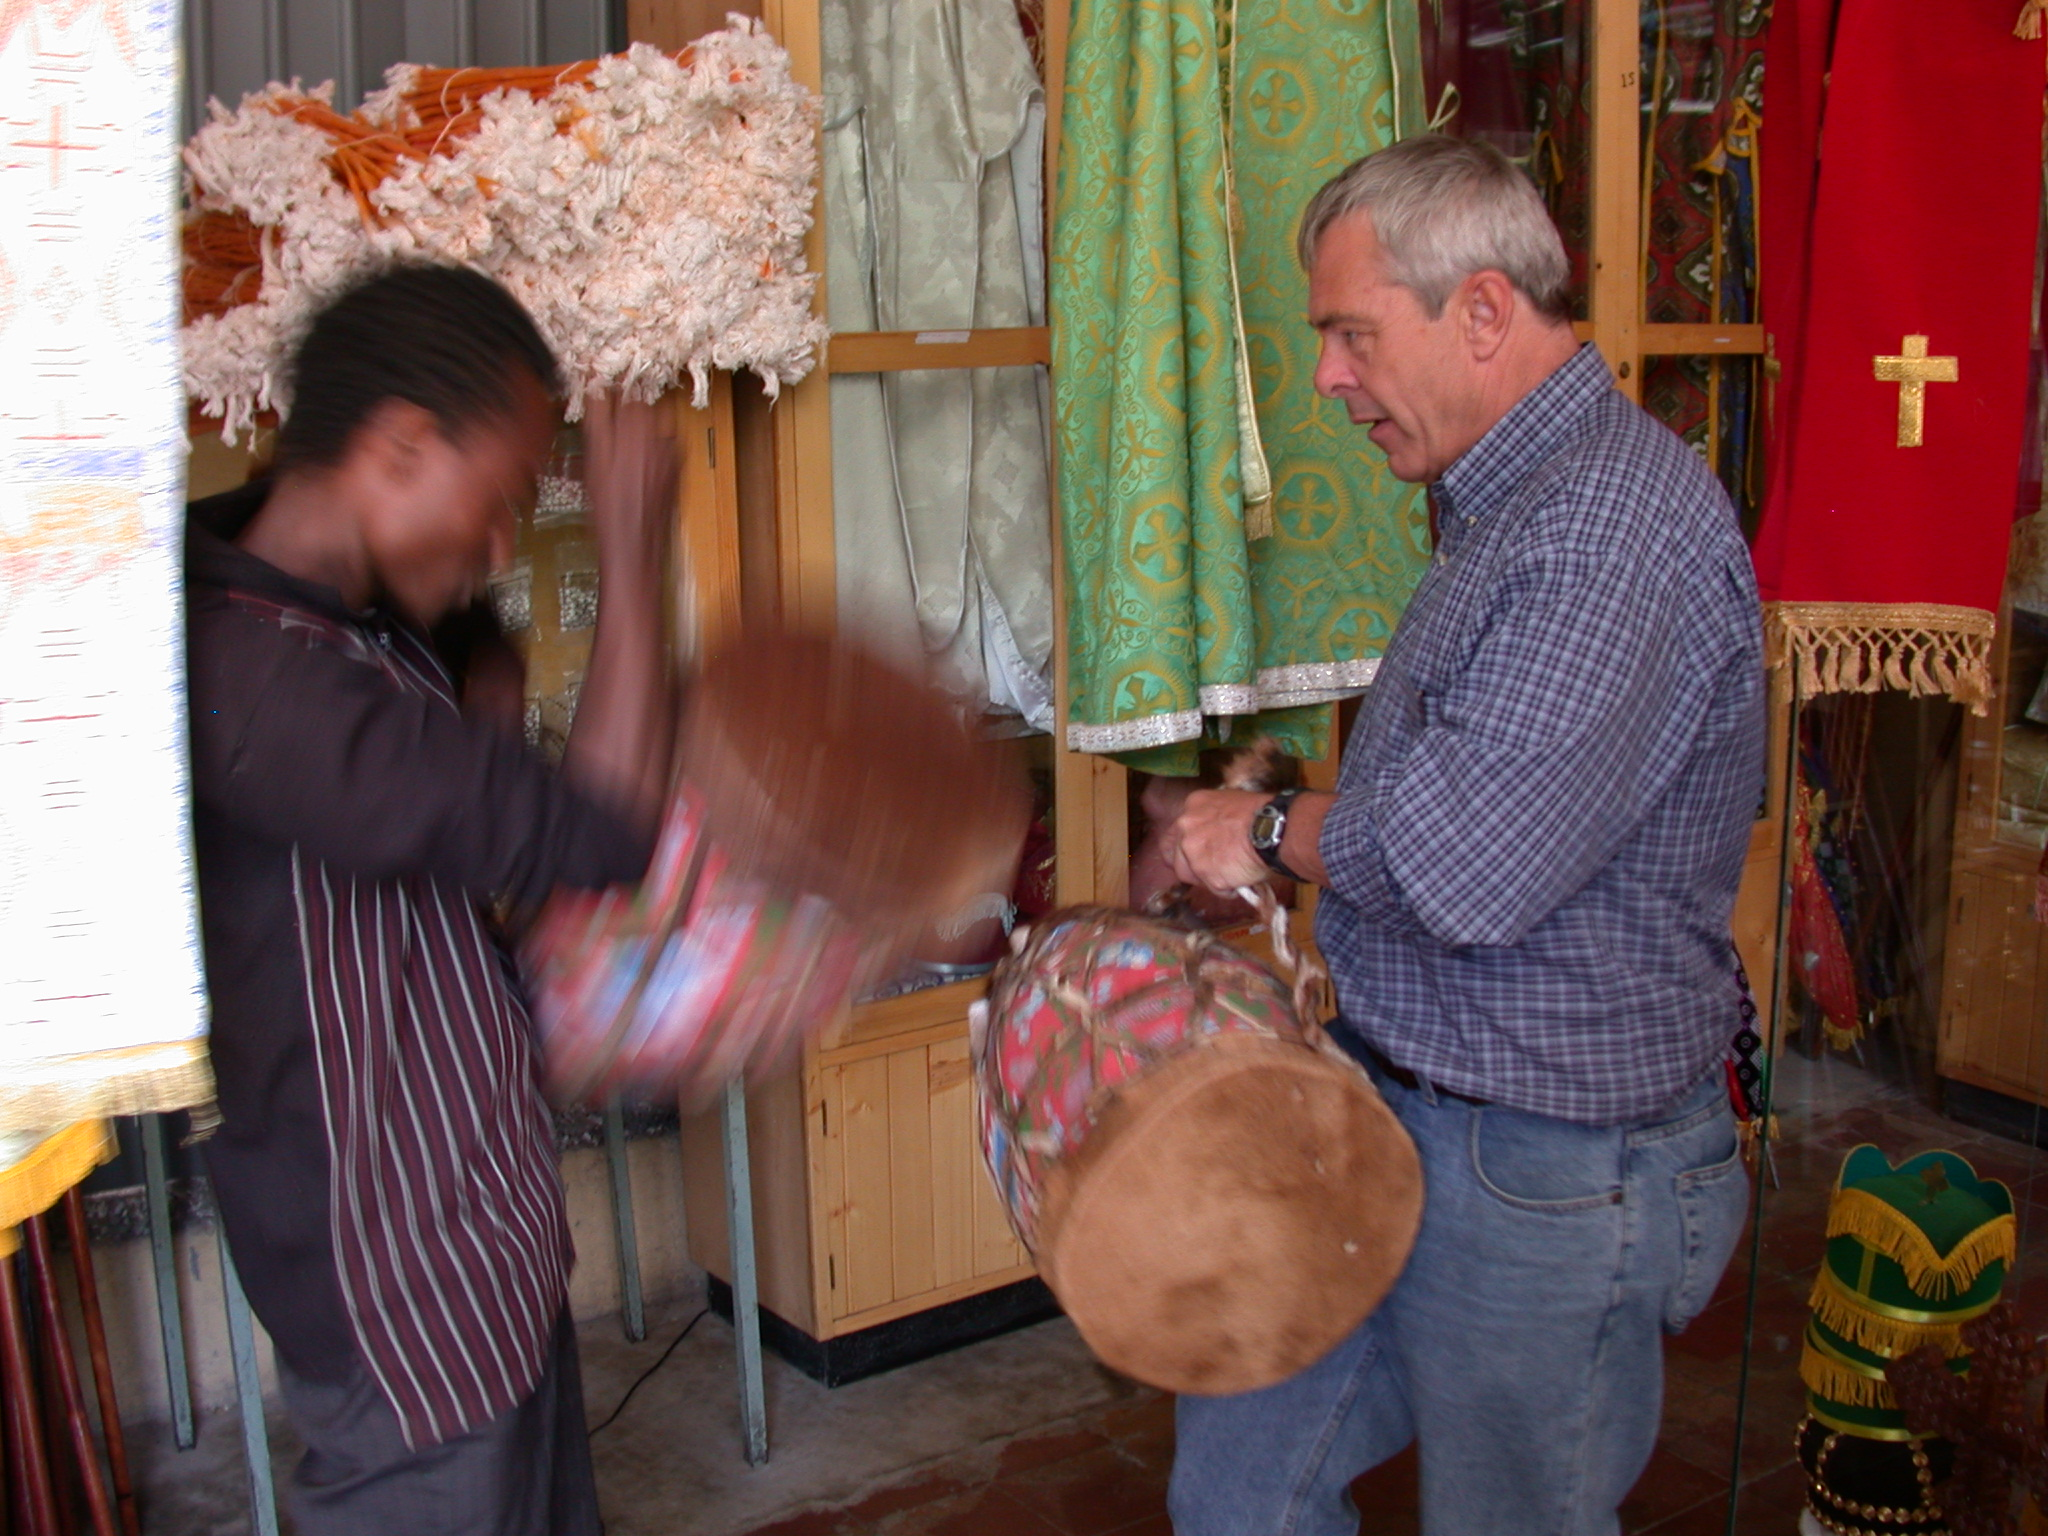 Gordon Buying Drum at Church Shop, Addis Ababa, Ethiopia